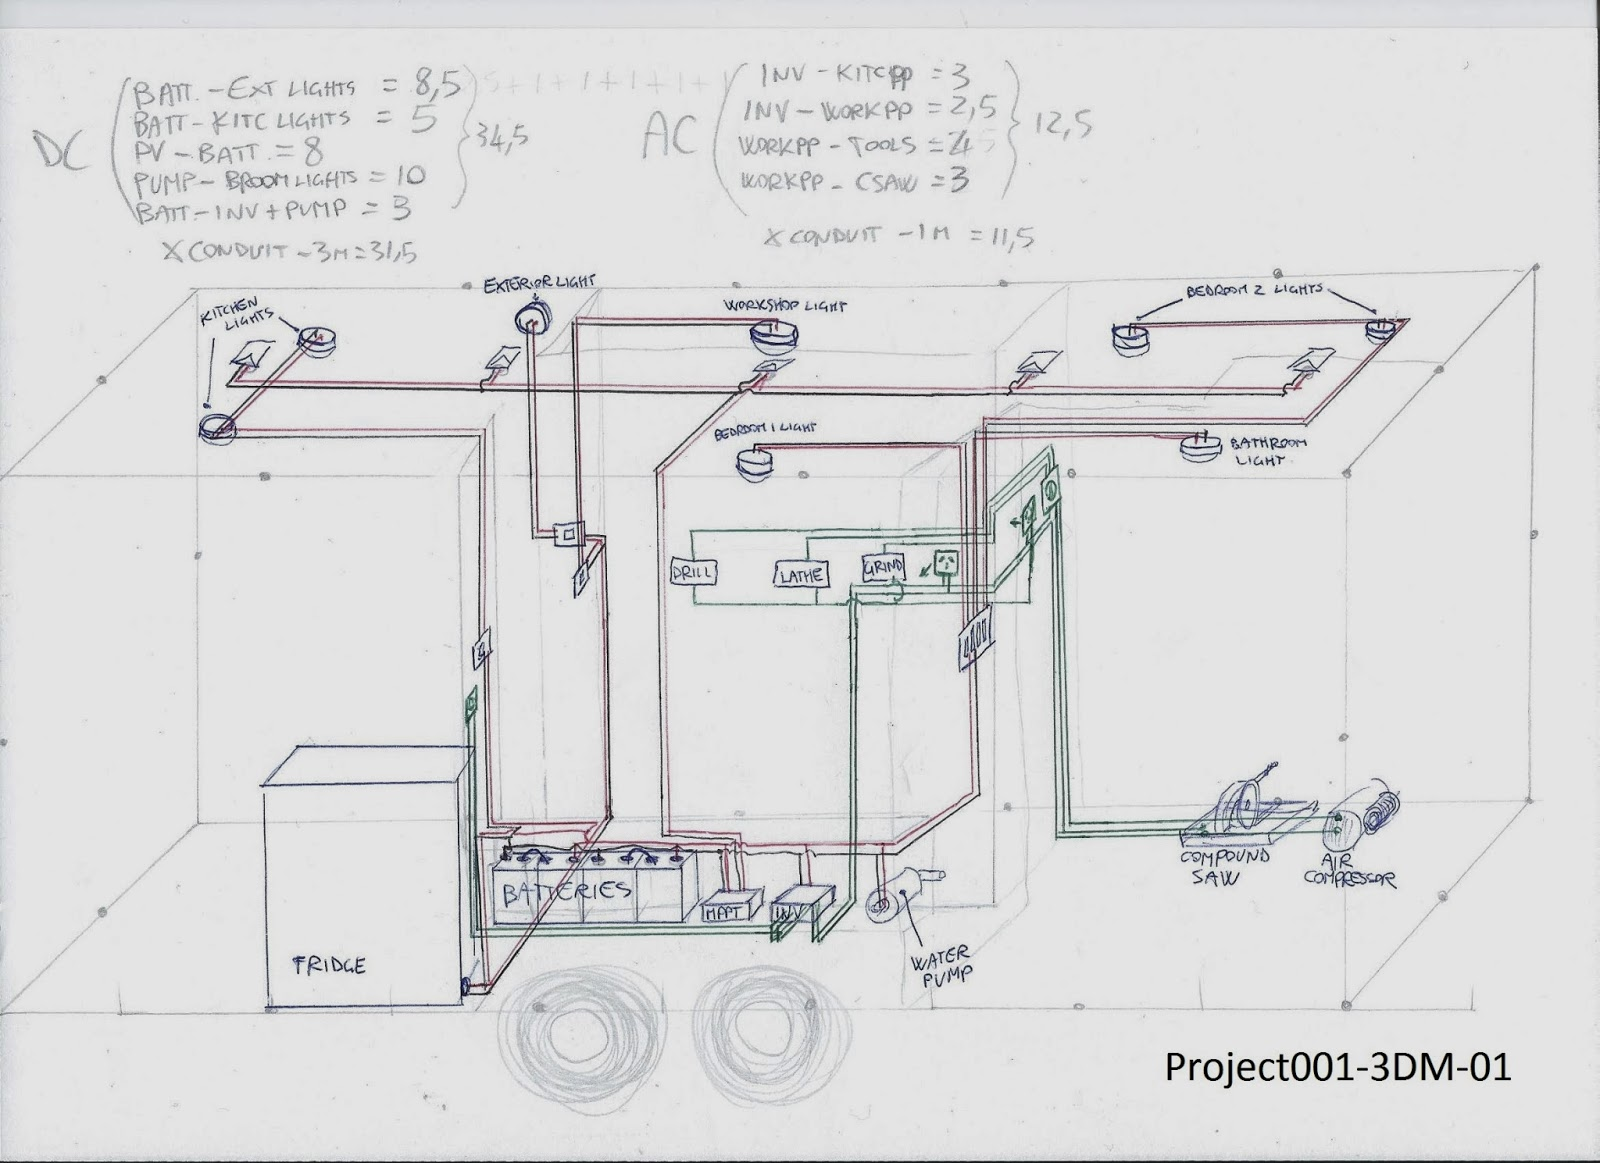 Wiring Diagram Wiring Diagram Or Schematic On Ke